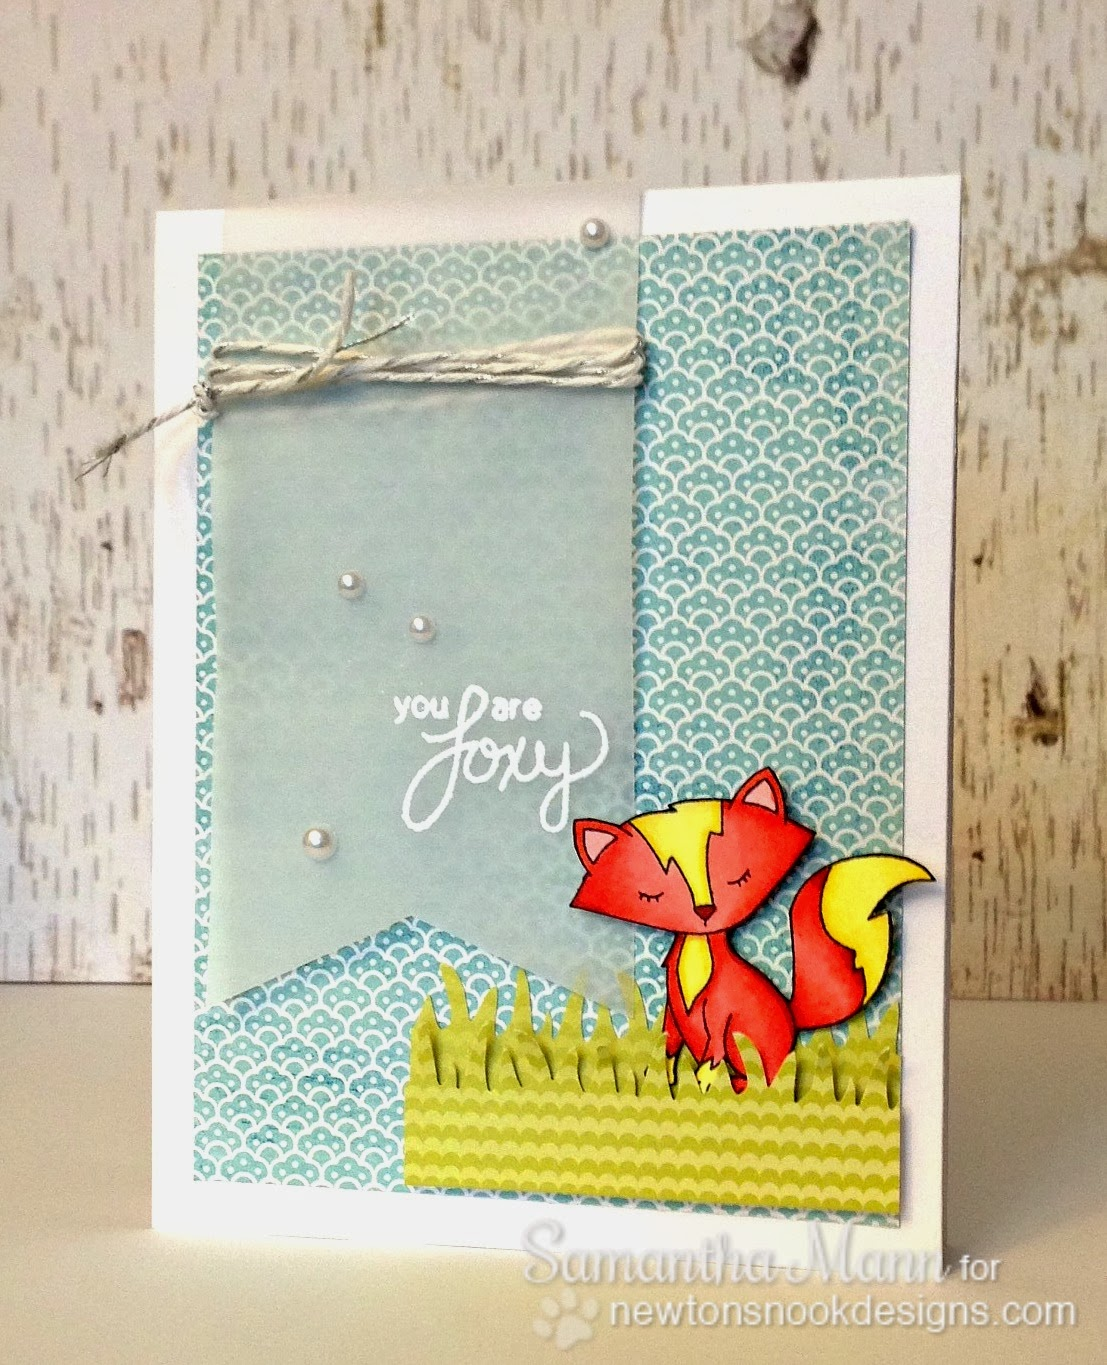 Fox card by Samantha Mann using Sweetheart Tails stamp set by Newton's Nook Designs